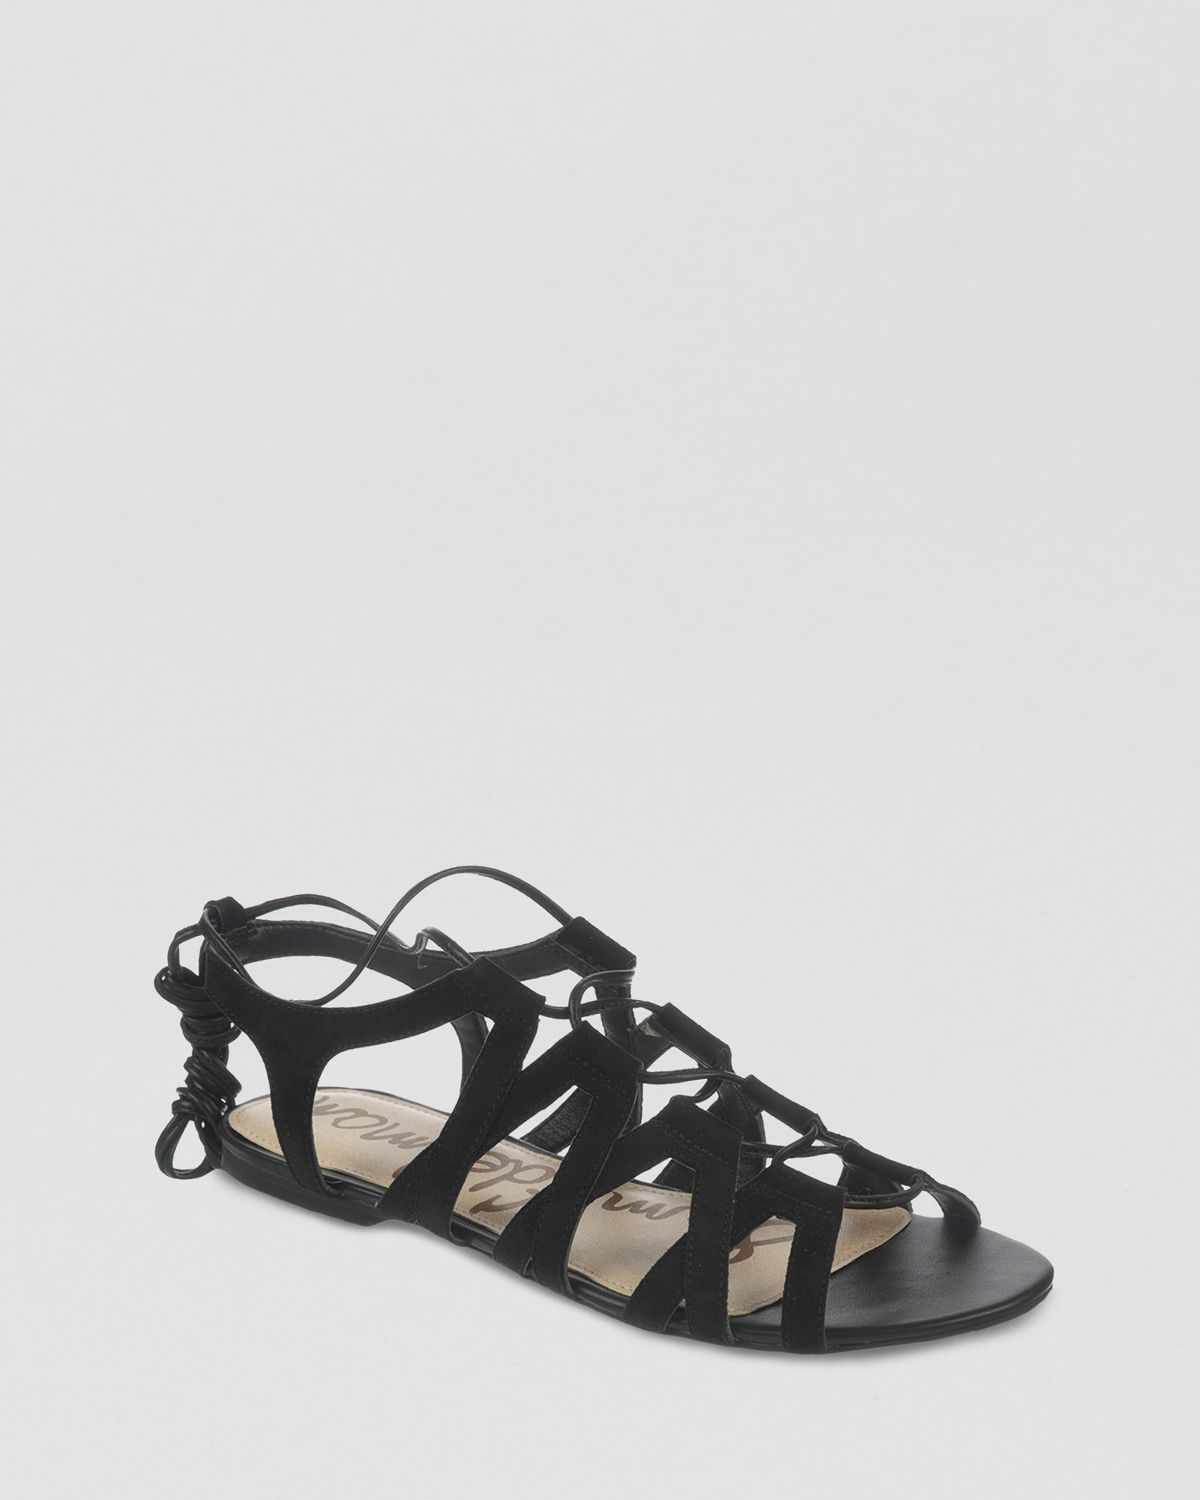 Lyst Sam Edelman Open Toe Flat Lace Up Gladiator Sandals